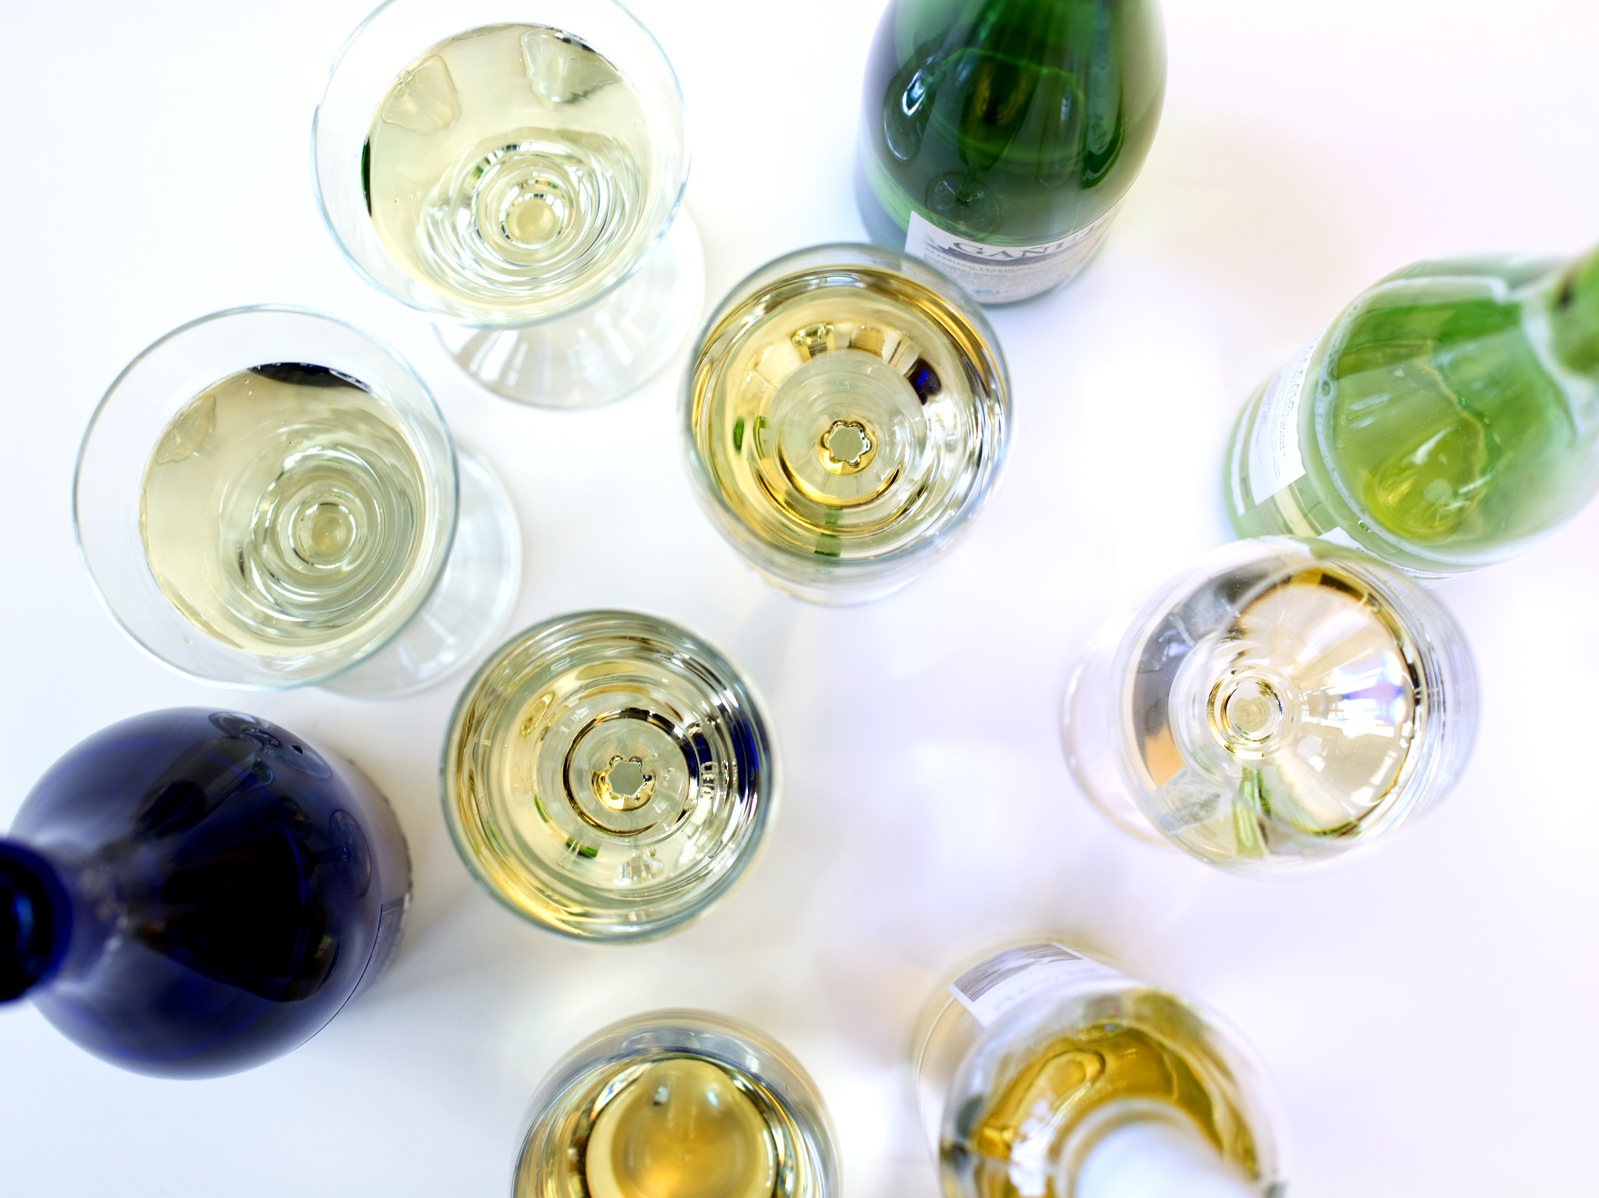 A selection of low-alcohol wines, including a Riesling from Germany, a Vinho Verde from Portugal and a Txakoli from the Basque region of Spain. Photo: Meredith Rizzo/NPR